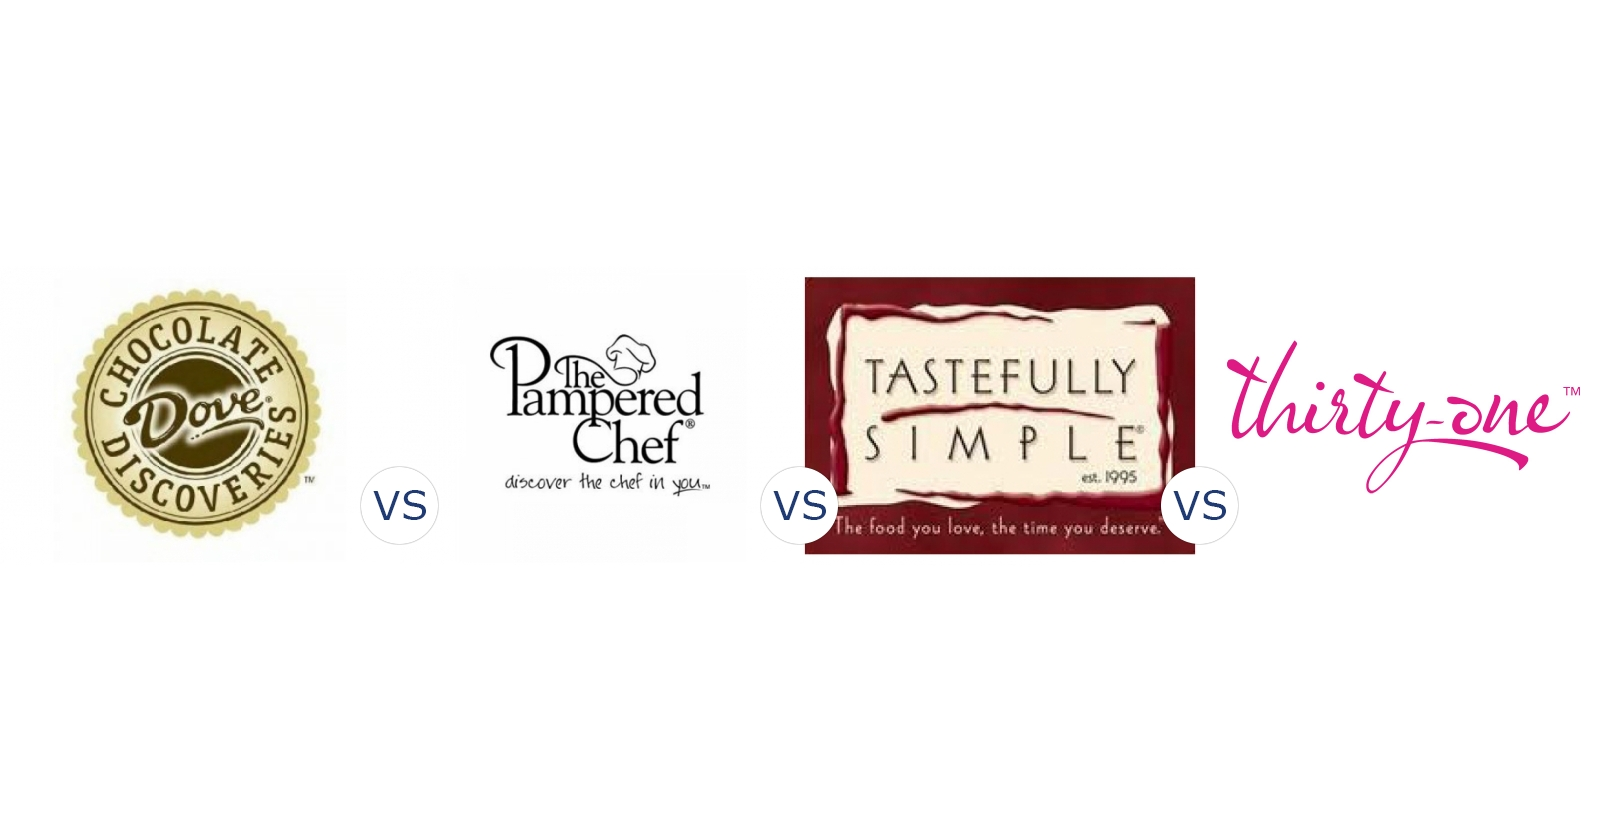 Dove Chocolate Discoveries Vs Pampered Chef Vs Tastefully Simple